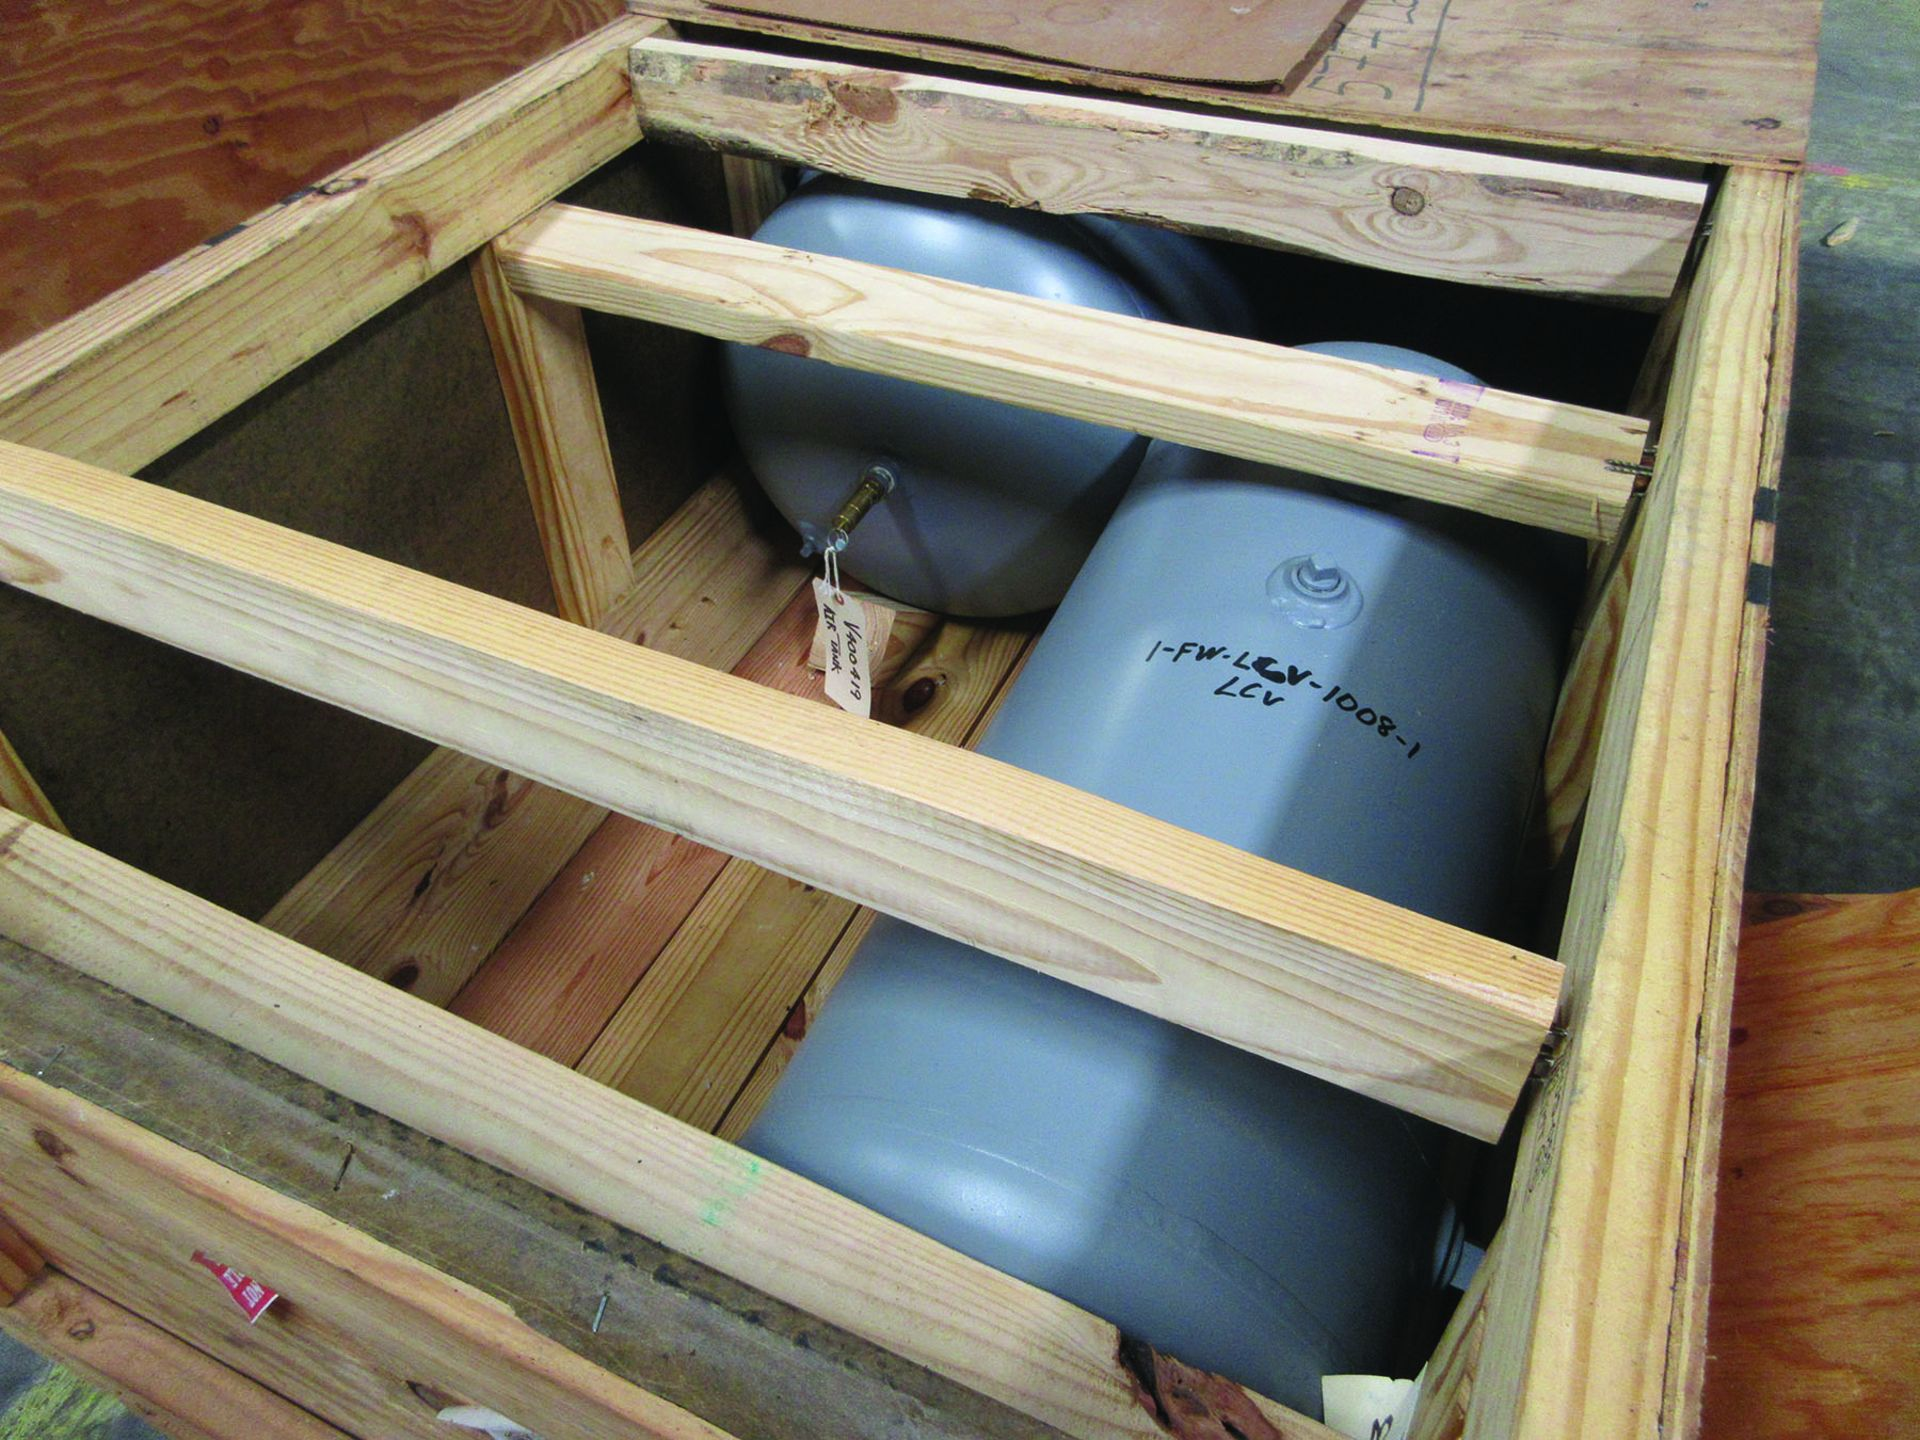 (10) CRATES CONTAINING: (4) 6'' VALVE ASSEMBLIES, (1) 3'' VALVE ASSEMBLY, (1) 8'' VALVE ASSEMBLY, ( - Image 6 of 16